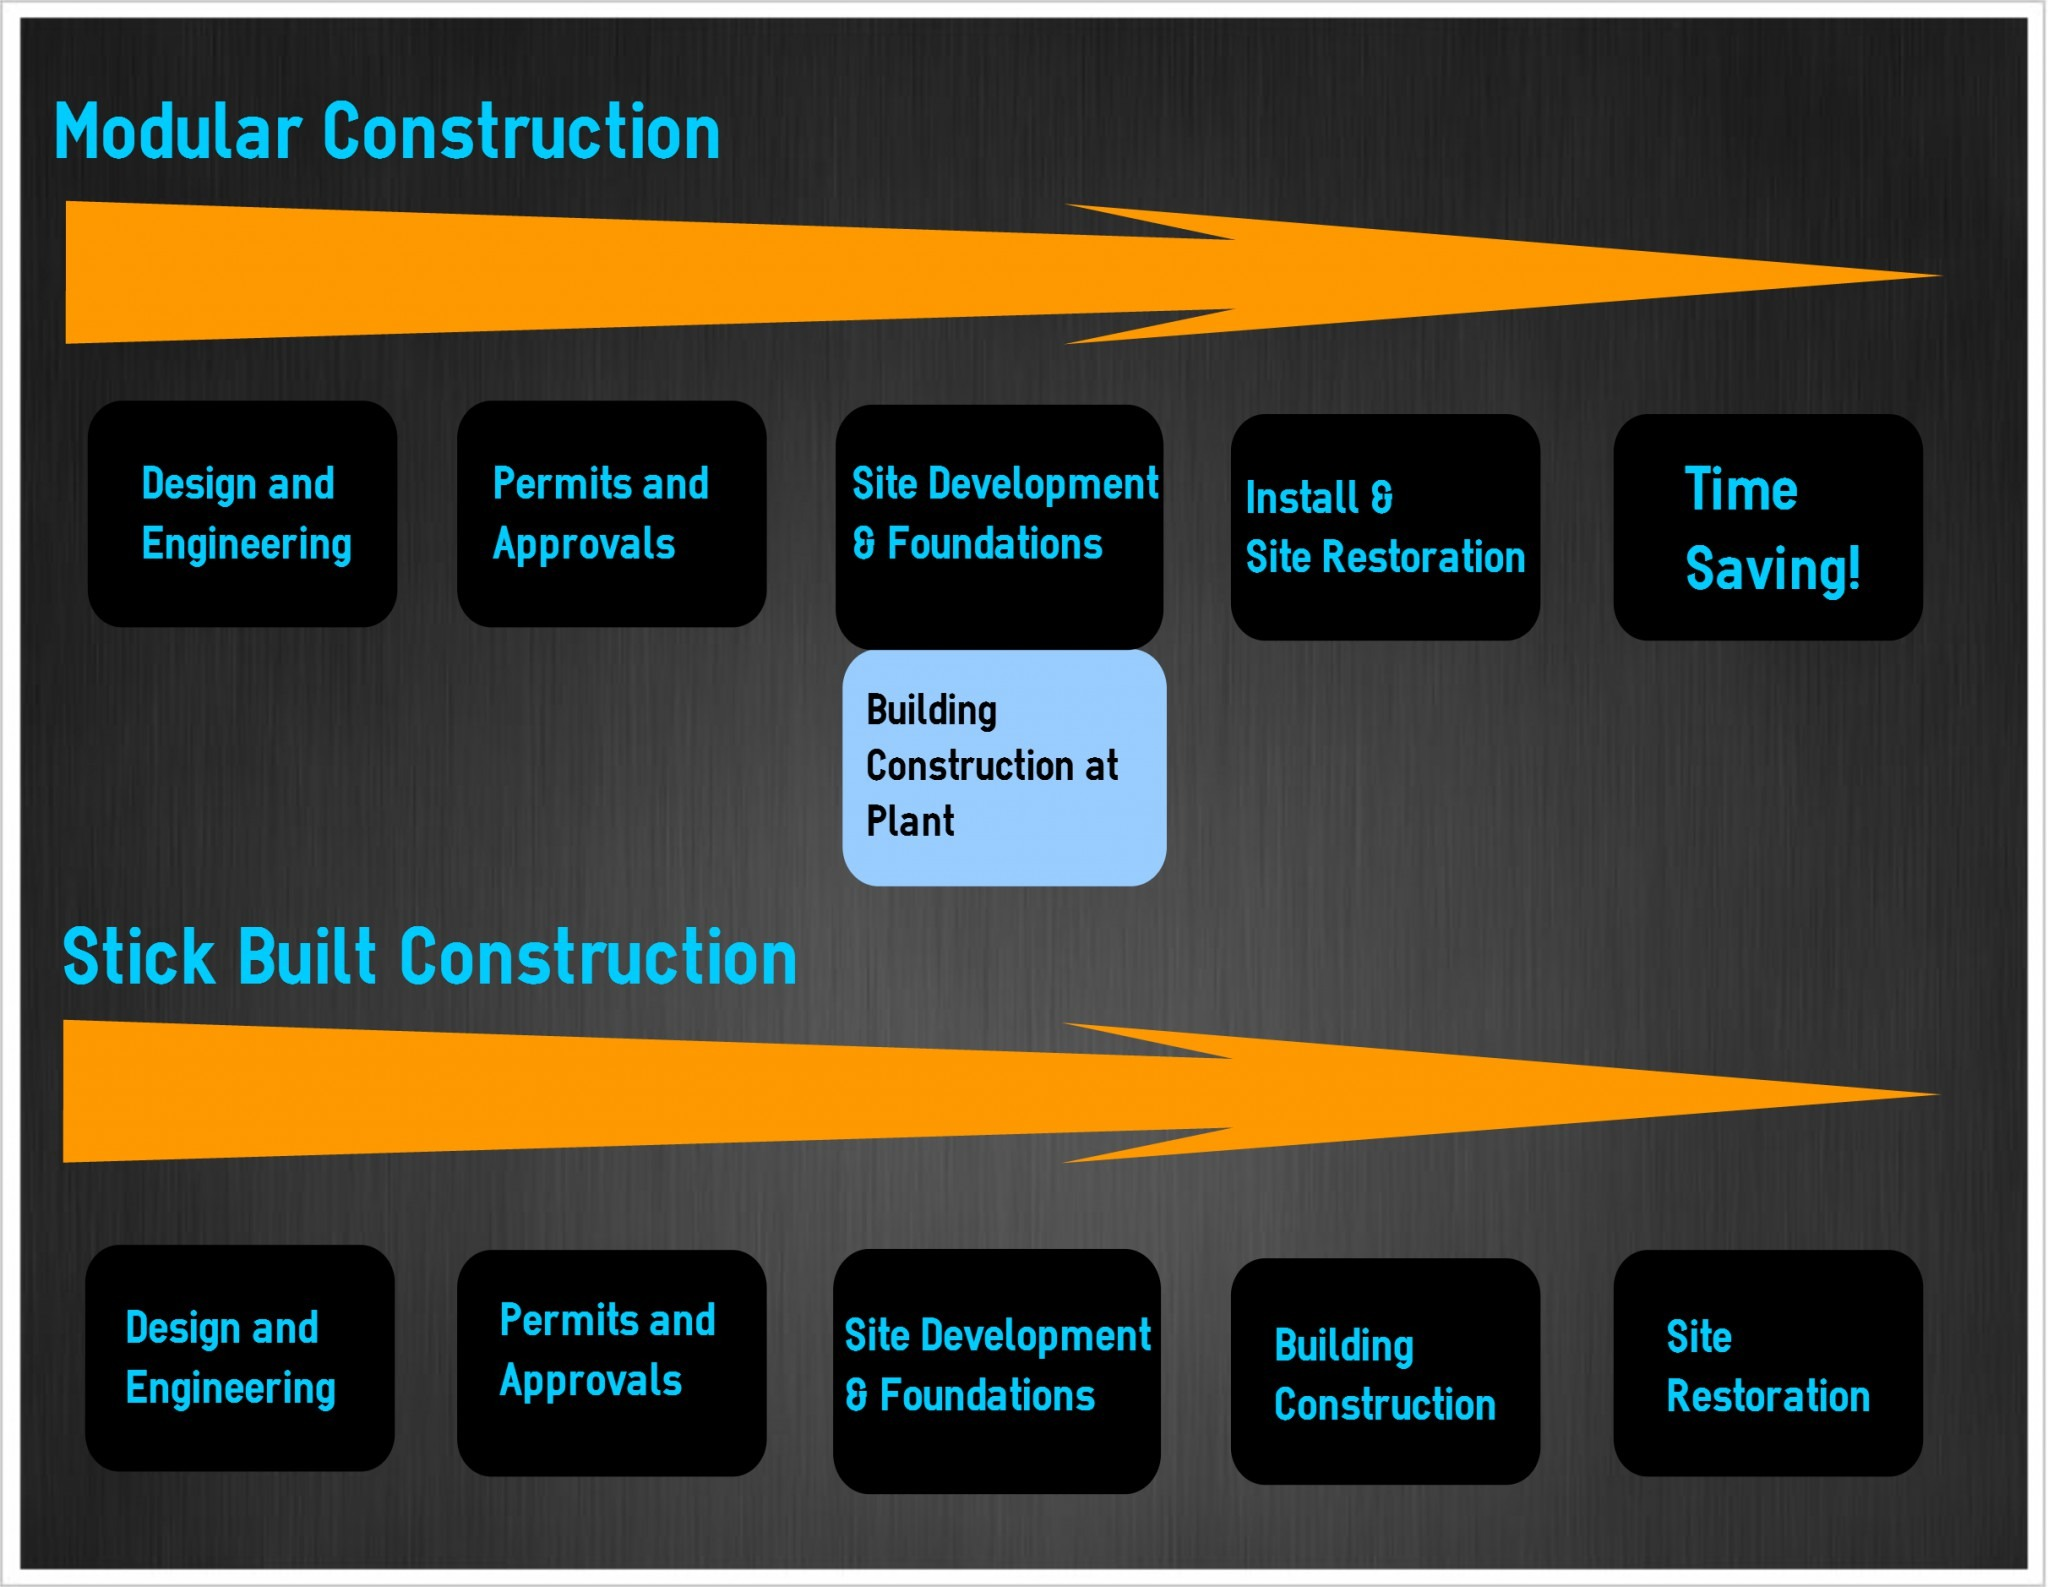 Modular Construction Process